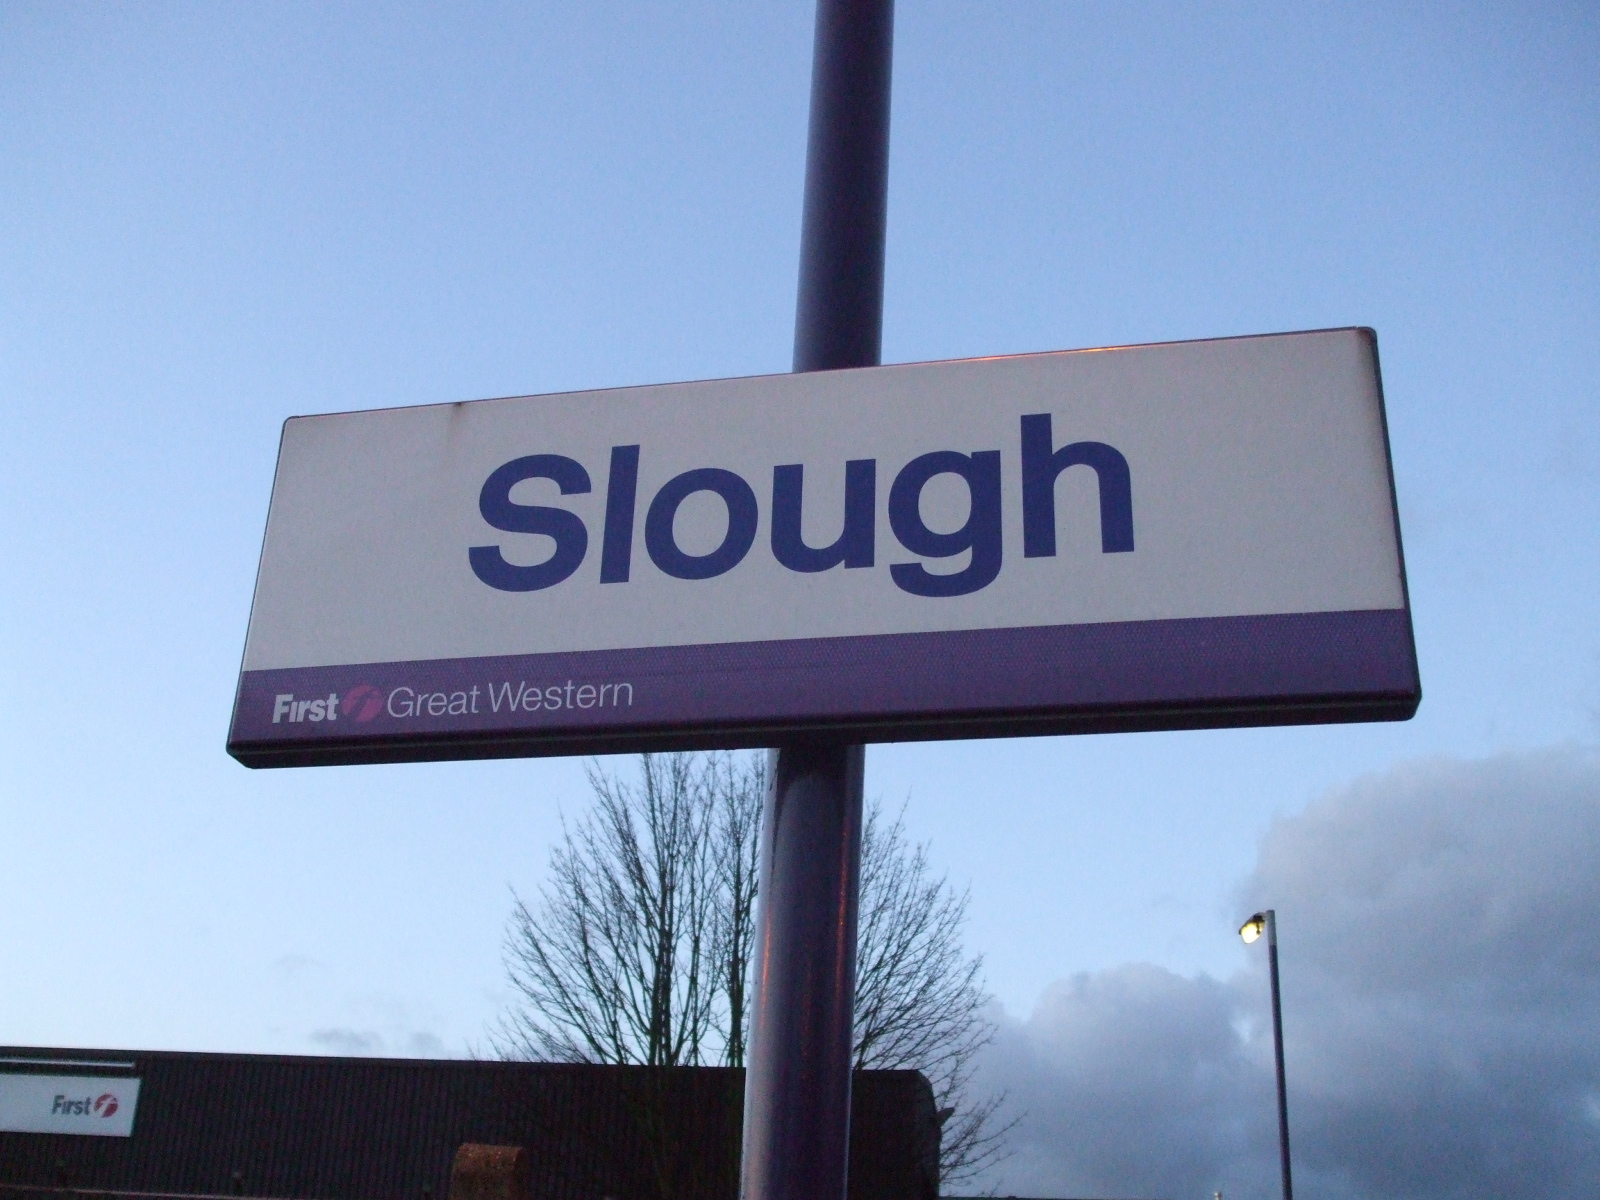 Solicitors In Slough Goldstein Legal